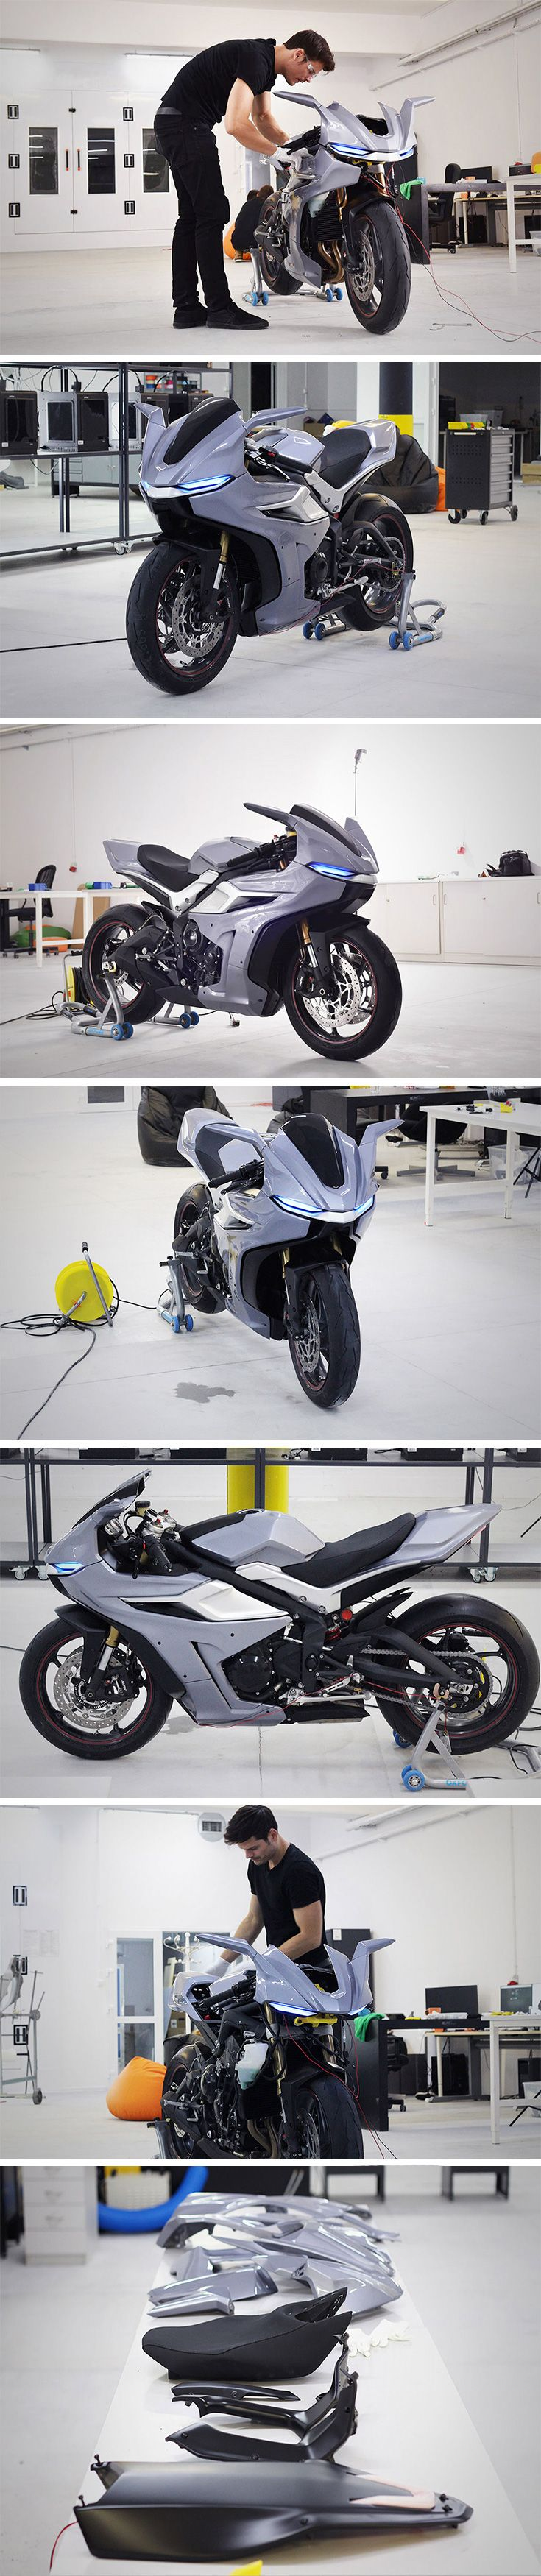 A total of 156 printed items were used to transform an existing motorcycle into an uber-aggressive and stylish street bike! From the front tip to the tank and tail, it's clad with super-sleek 3D printed fairings made using state-of-the-art FDM technology. Not only an aesthetic improvement, the lightweight paneling offers enhanced aerodynamics for this track-ready racer.